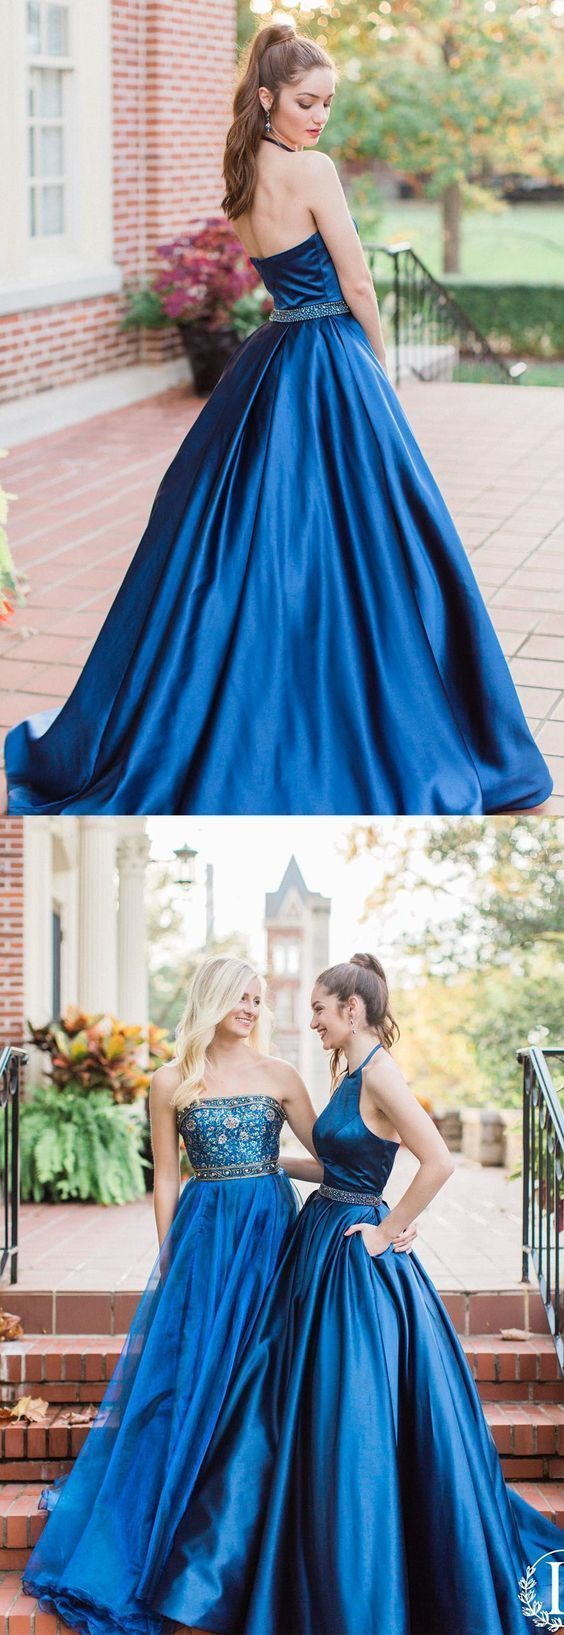 Halter navy blue long prom dress prom dress party dress prom